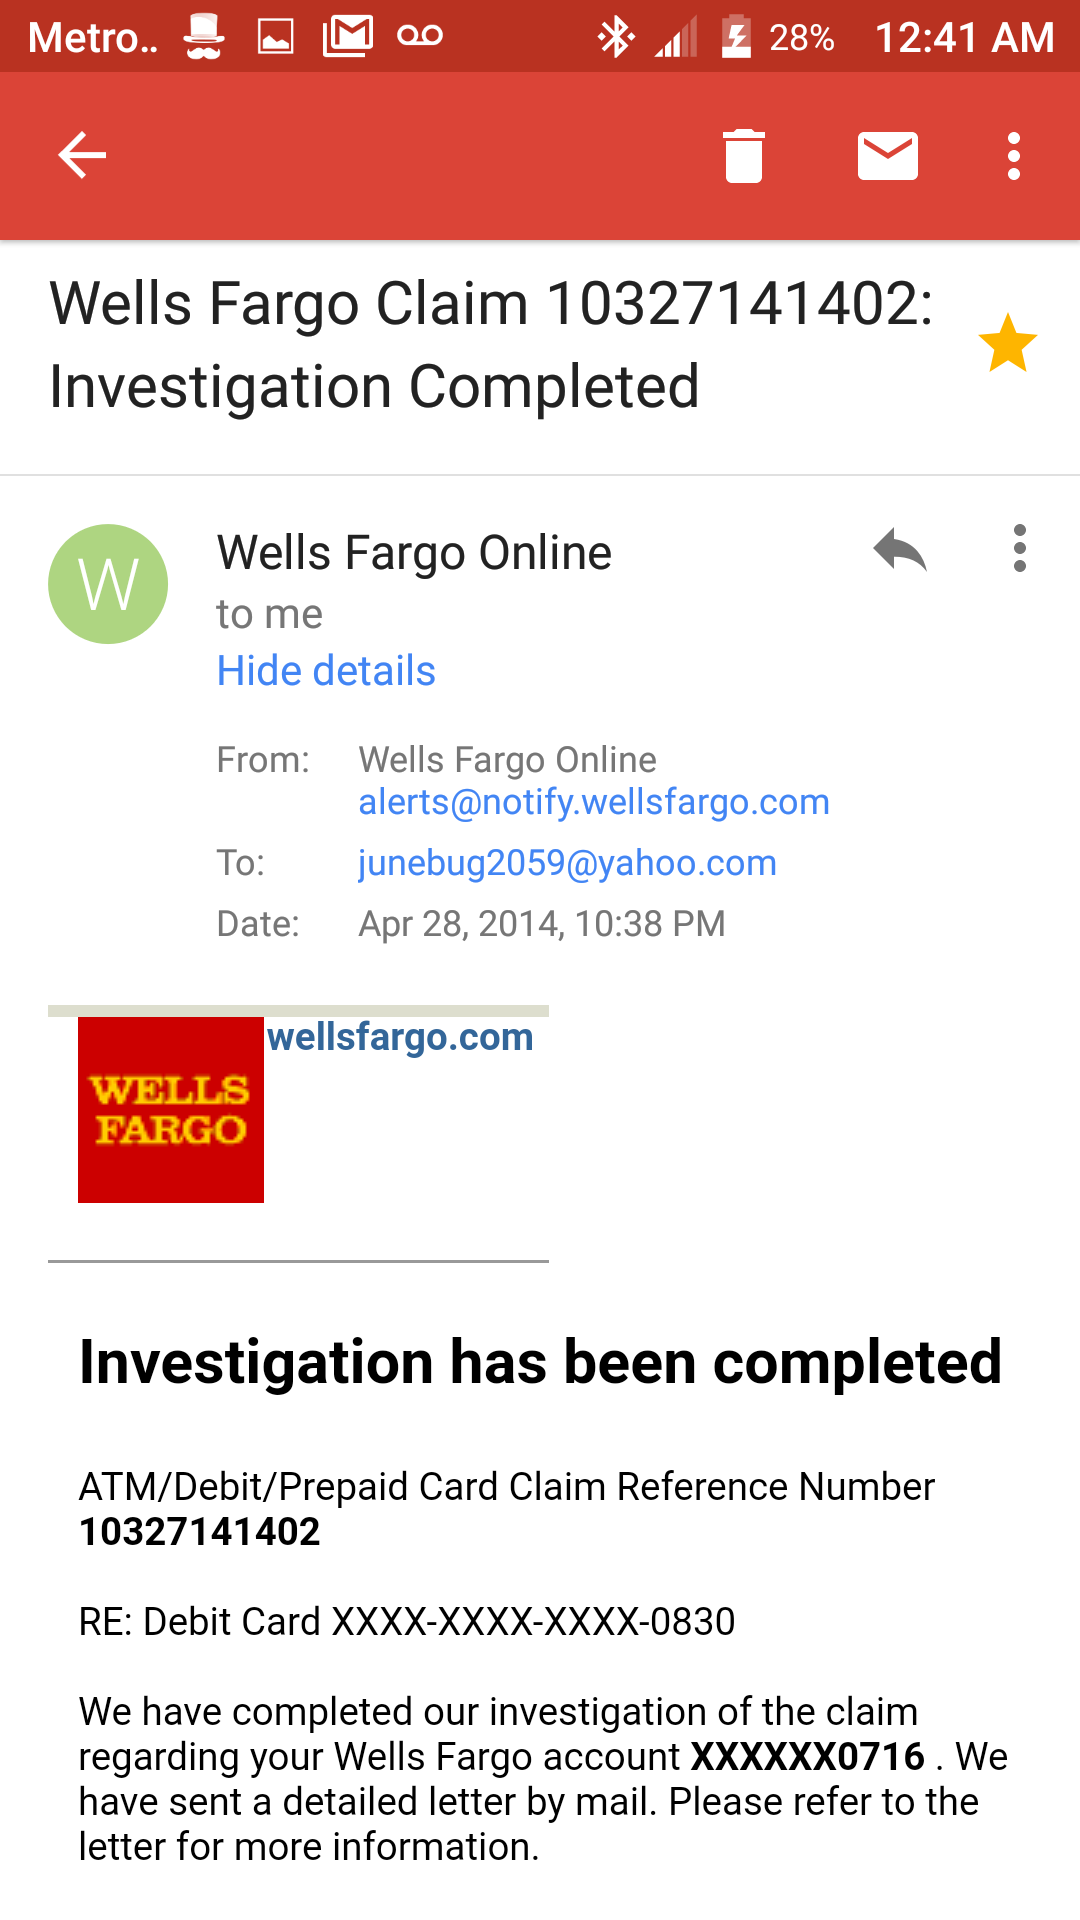 Wells Fargo Funds Management, LLC, a wholly owned subsidiary of Wells Fargo & Company, provides investment advisory and administrative services for Wells Fargo Funds. Other affiliates of Wells Fargo & Company provide subadvisory and other services for the funds. The funds are distributed by.